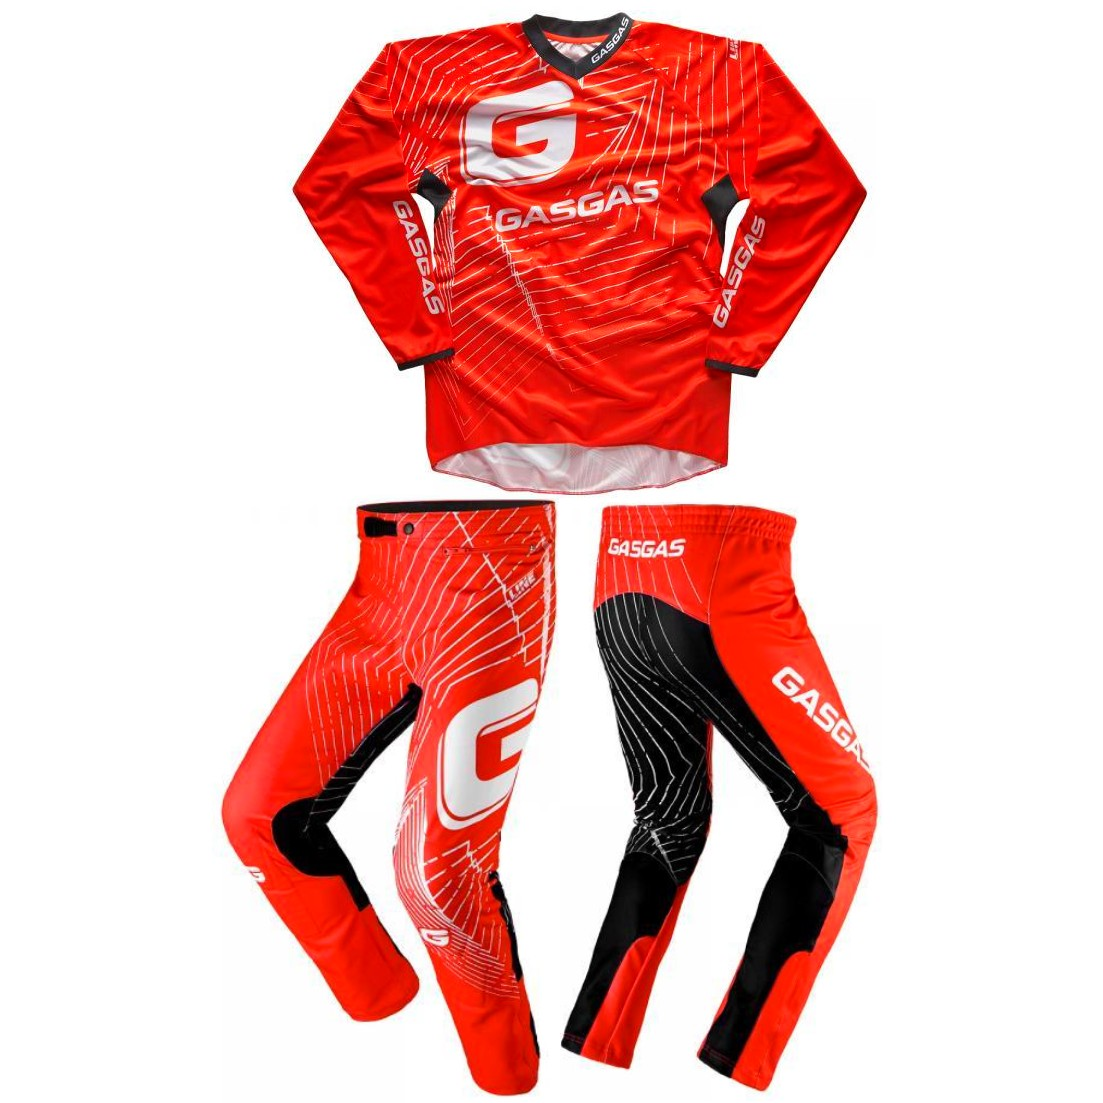 ENSEMBLE TENUE TRIAL  PANTALON MAILLOT JITSIE GASGAS ROUGE